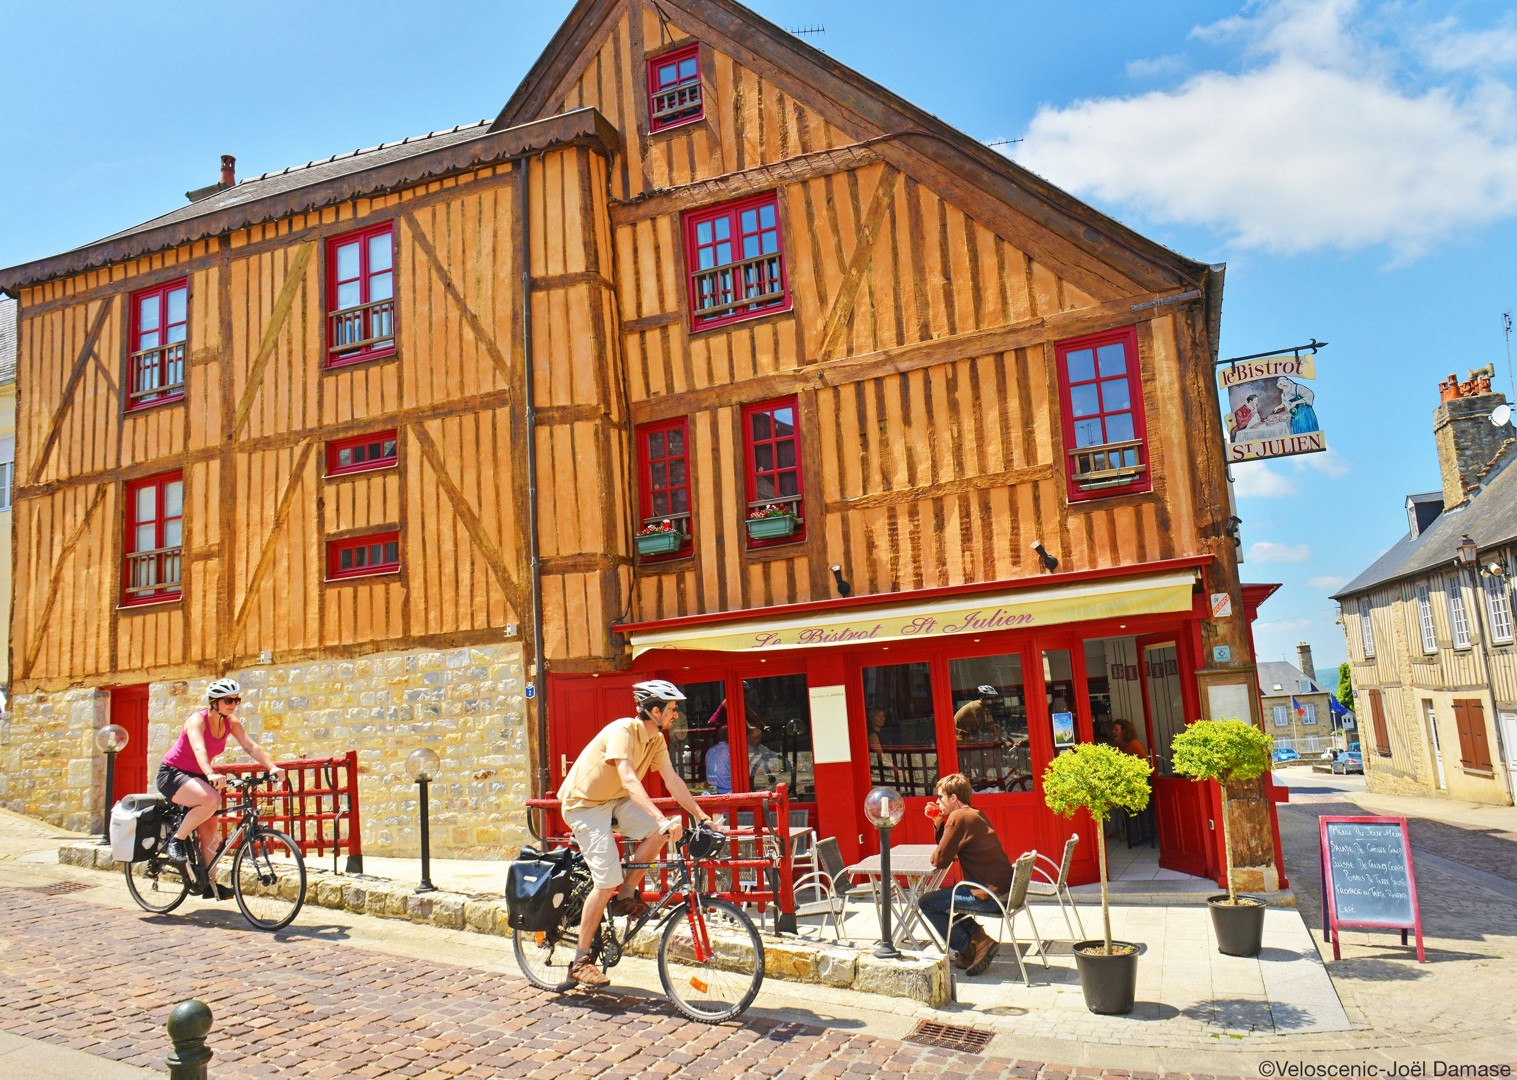 france-leisure-cycling-holiday-culture-houses-quality-accommodation.jpg - France - Versailles to Mont Saint Michel - Self-Guided Leisure Cycling Holiday - Leisure Cycling